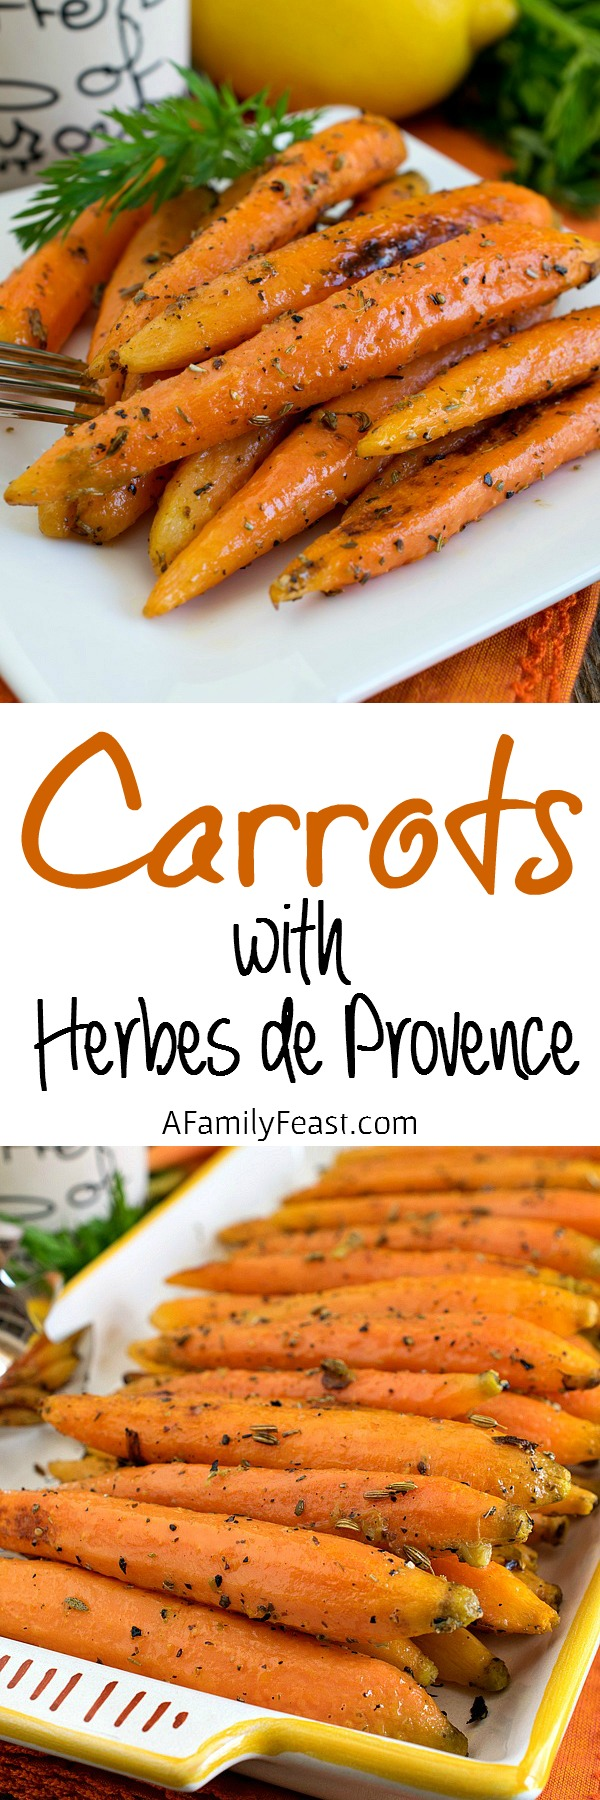 Carrots with Herbes de Provence - A simple, elegant and flavorful way to prepare fresh carrots.